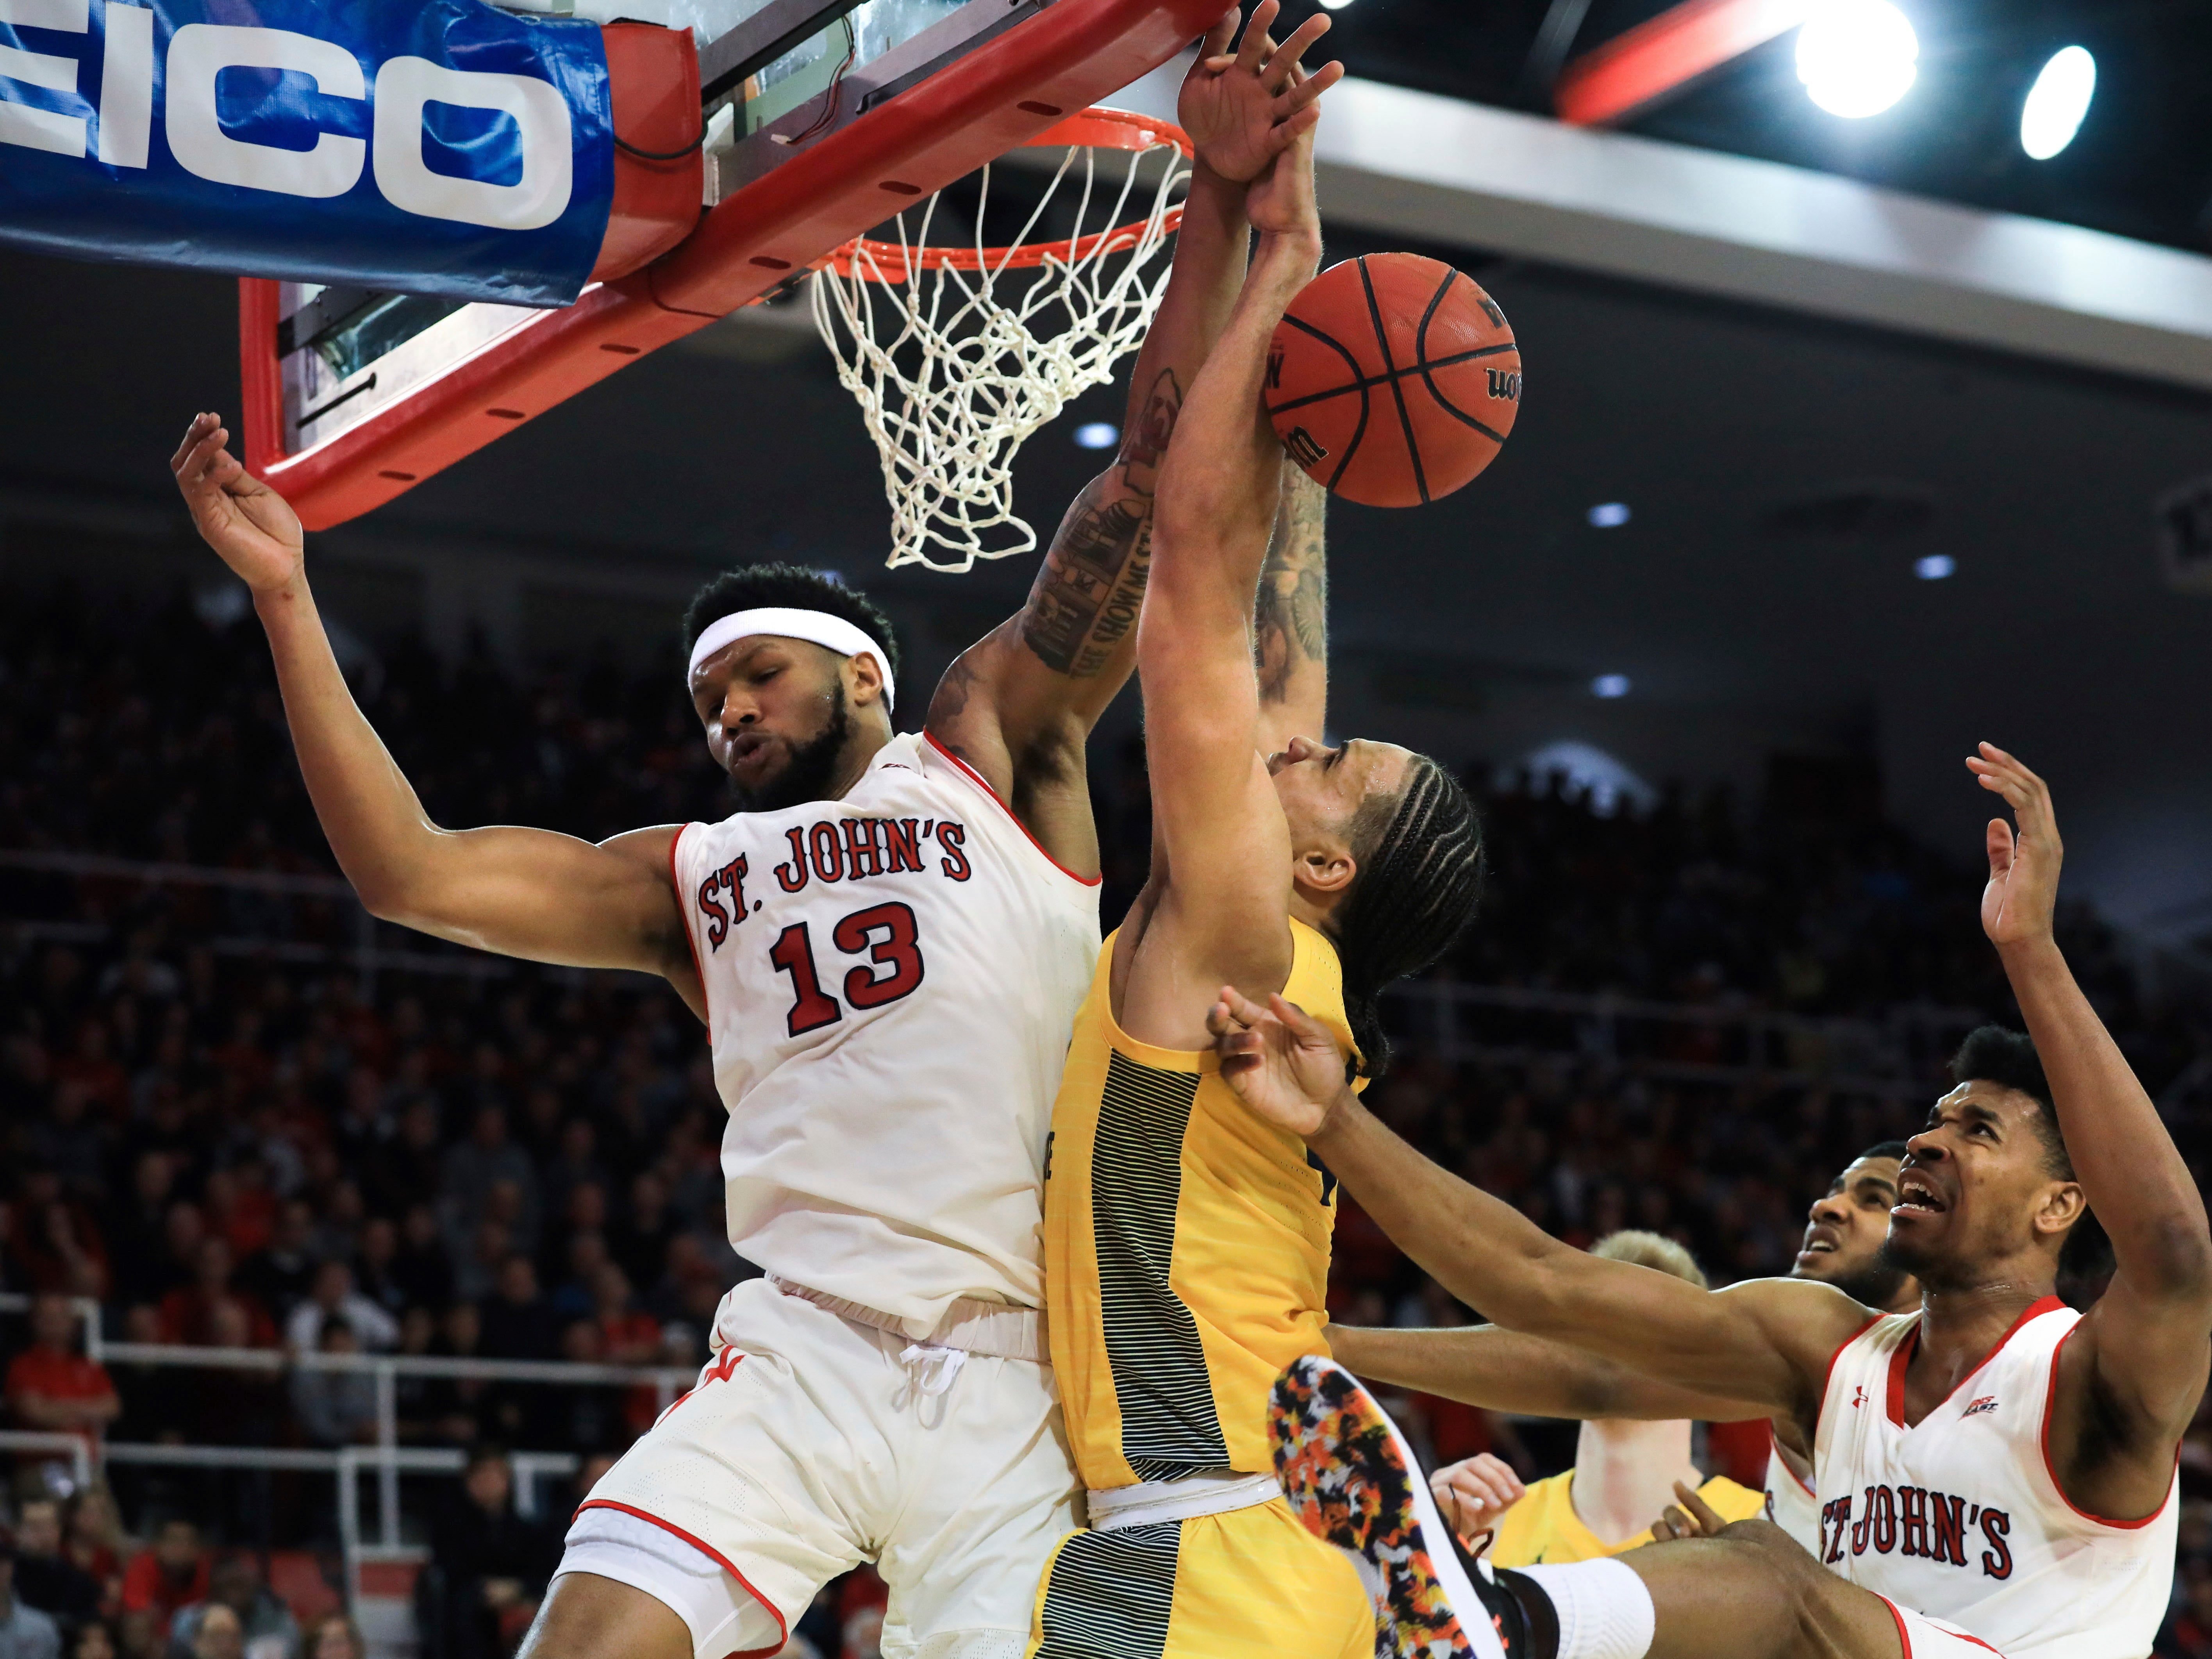 St. John's forward Marvin Clark II blocks a shot from Marquette forward Theo John during the first half of an NCAA college basketball game Tuesday, Jan. 1, 2019, in New York. (AP Photo/Kevin Hagen). ORG XMIT: NYKH104